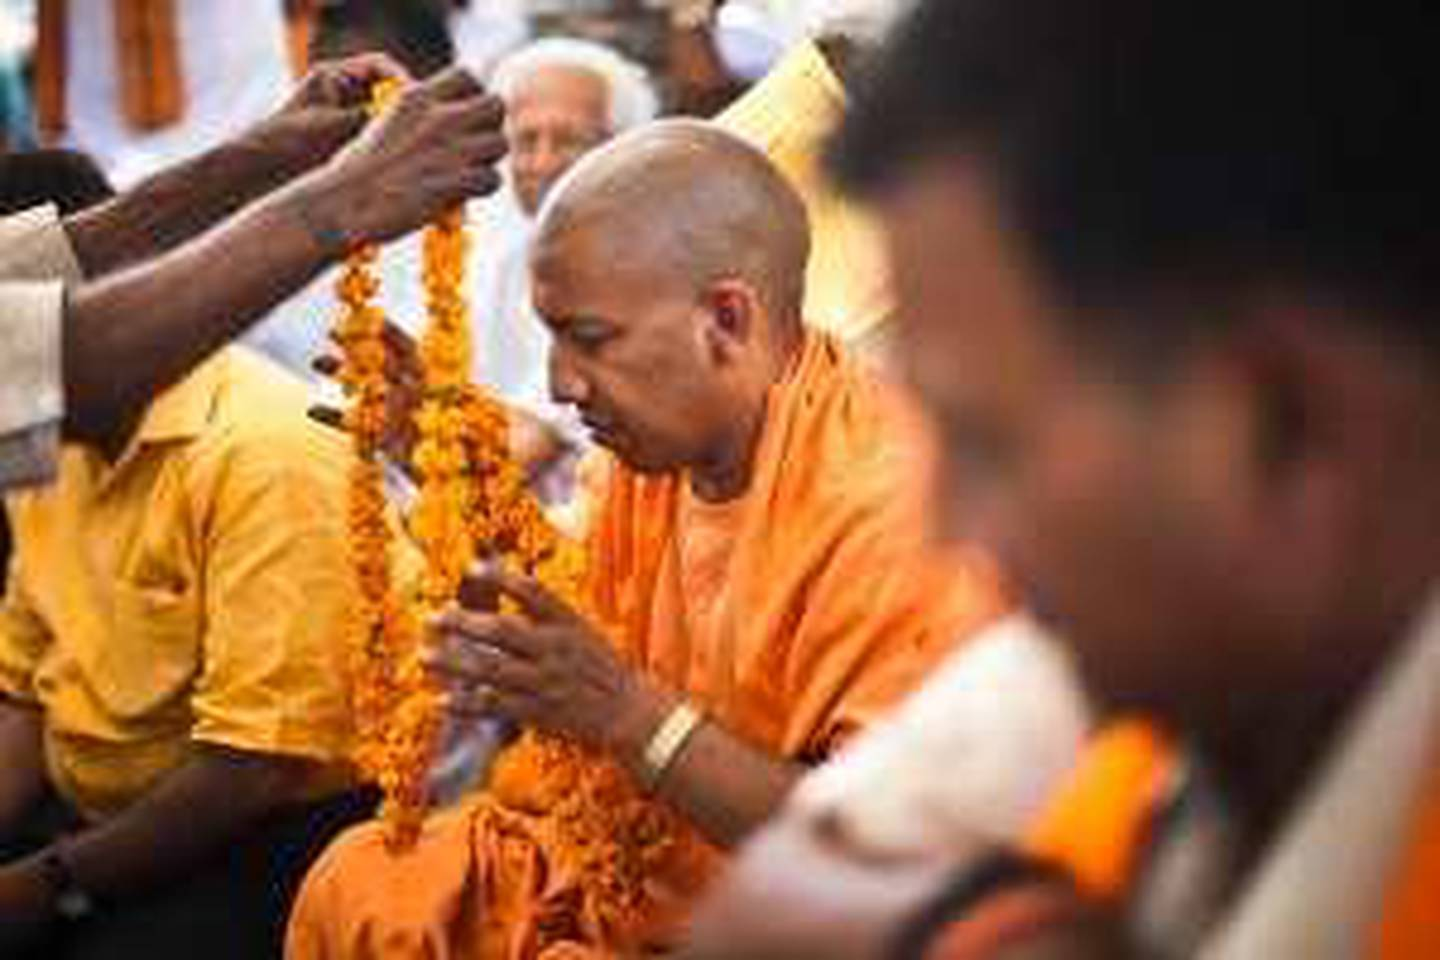 Bharatiya Janta Party's candidate, and minister of parliament, Yogi Adityanath is welcomed with garlands by the gathered audience in villages during his campaign in the outskirts of Gorakhpur, Uttar Pradesh, India. Photograph: Sanjit Das for The National